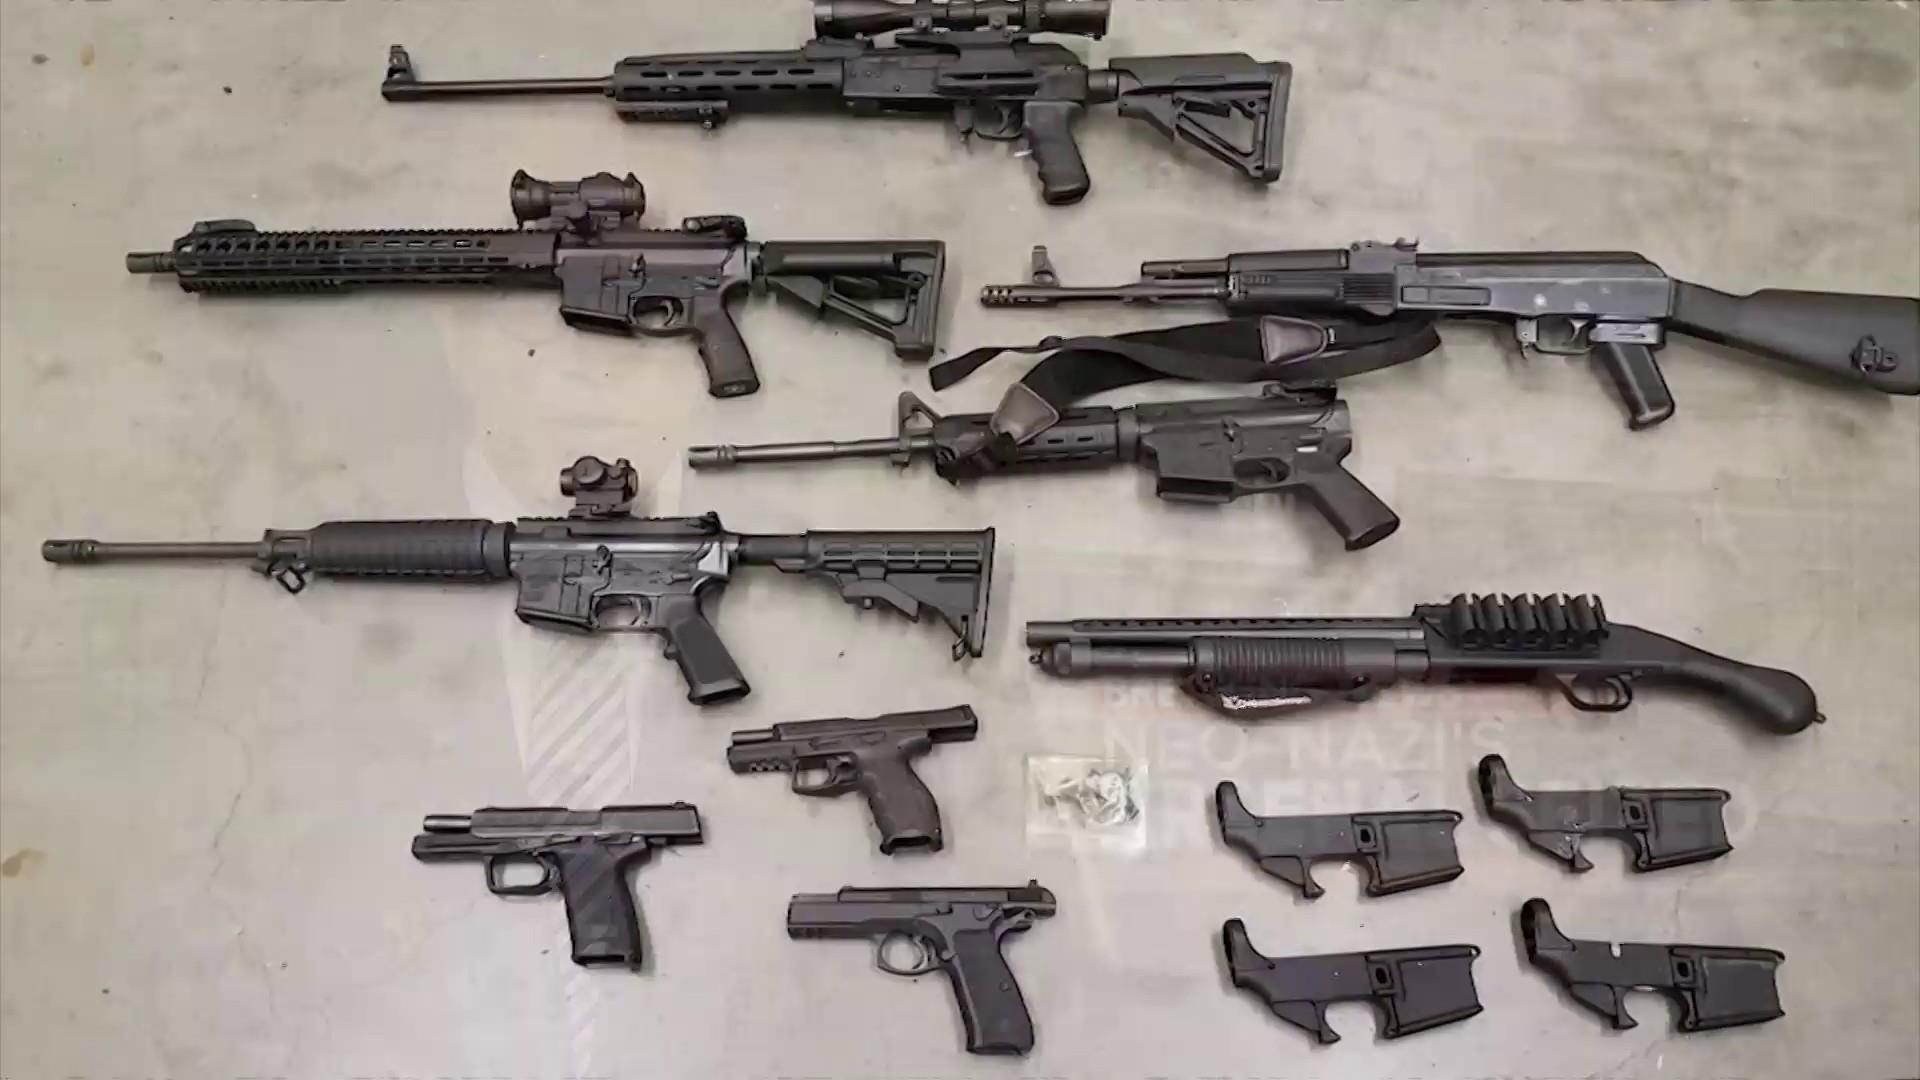 Guns seized from Washington man said to be neo-Nazi leader prepping for 'race war'